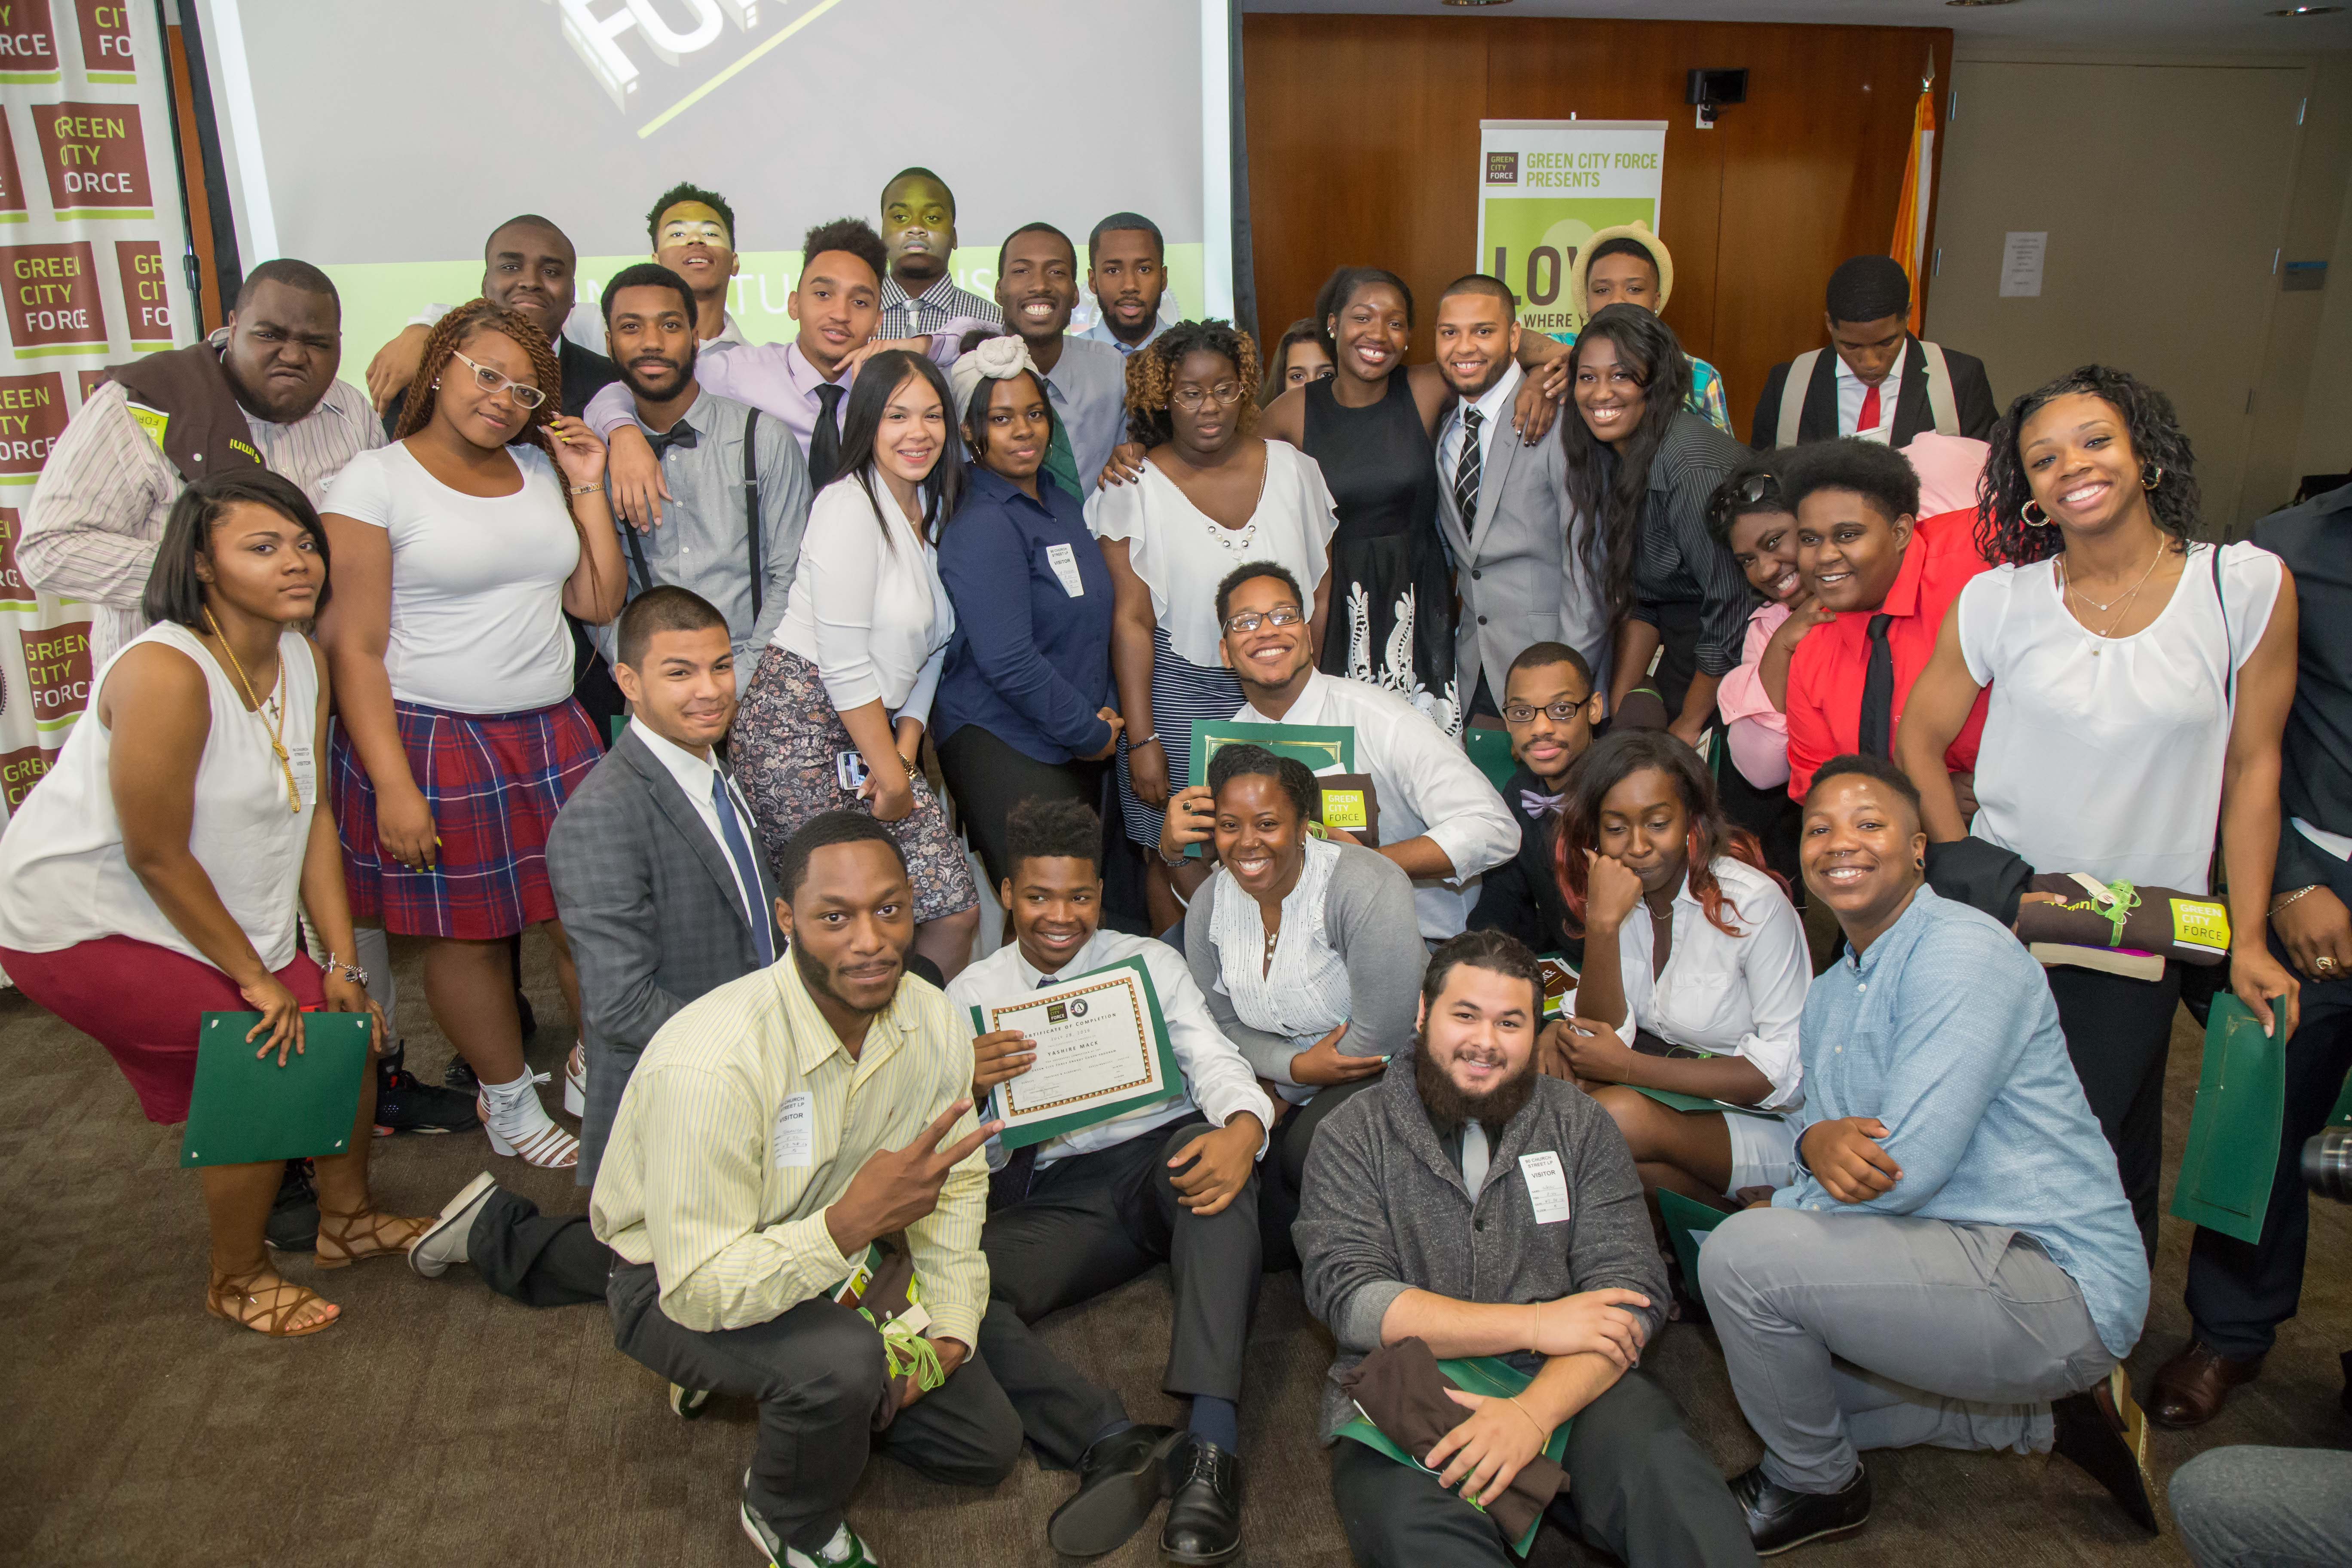 Congratulations to all our Clean Energy Corps graduates in Cohort 11!